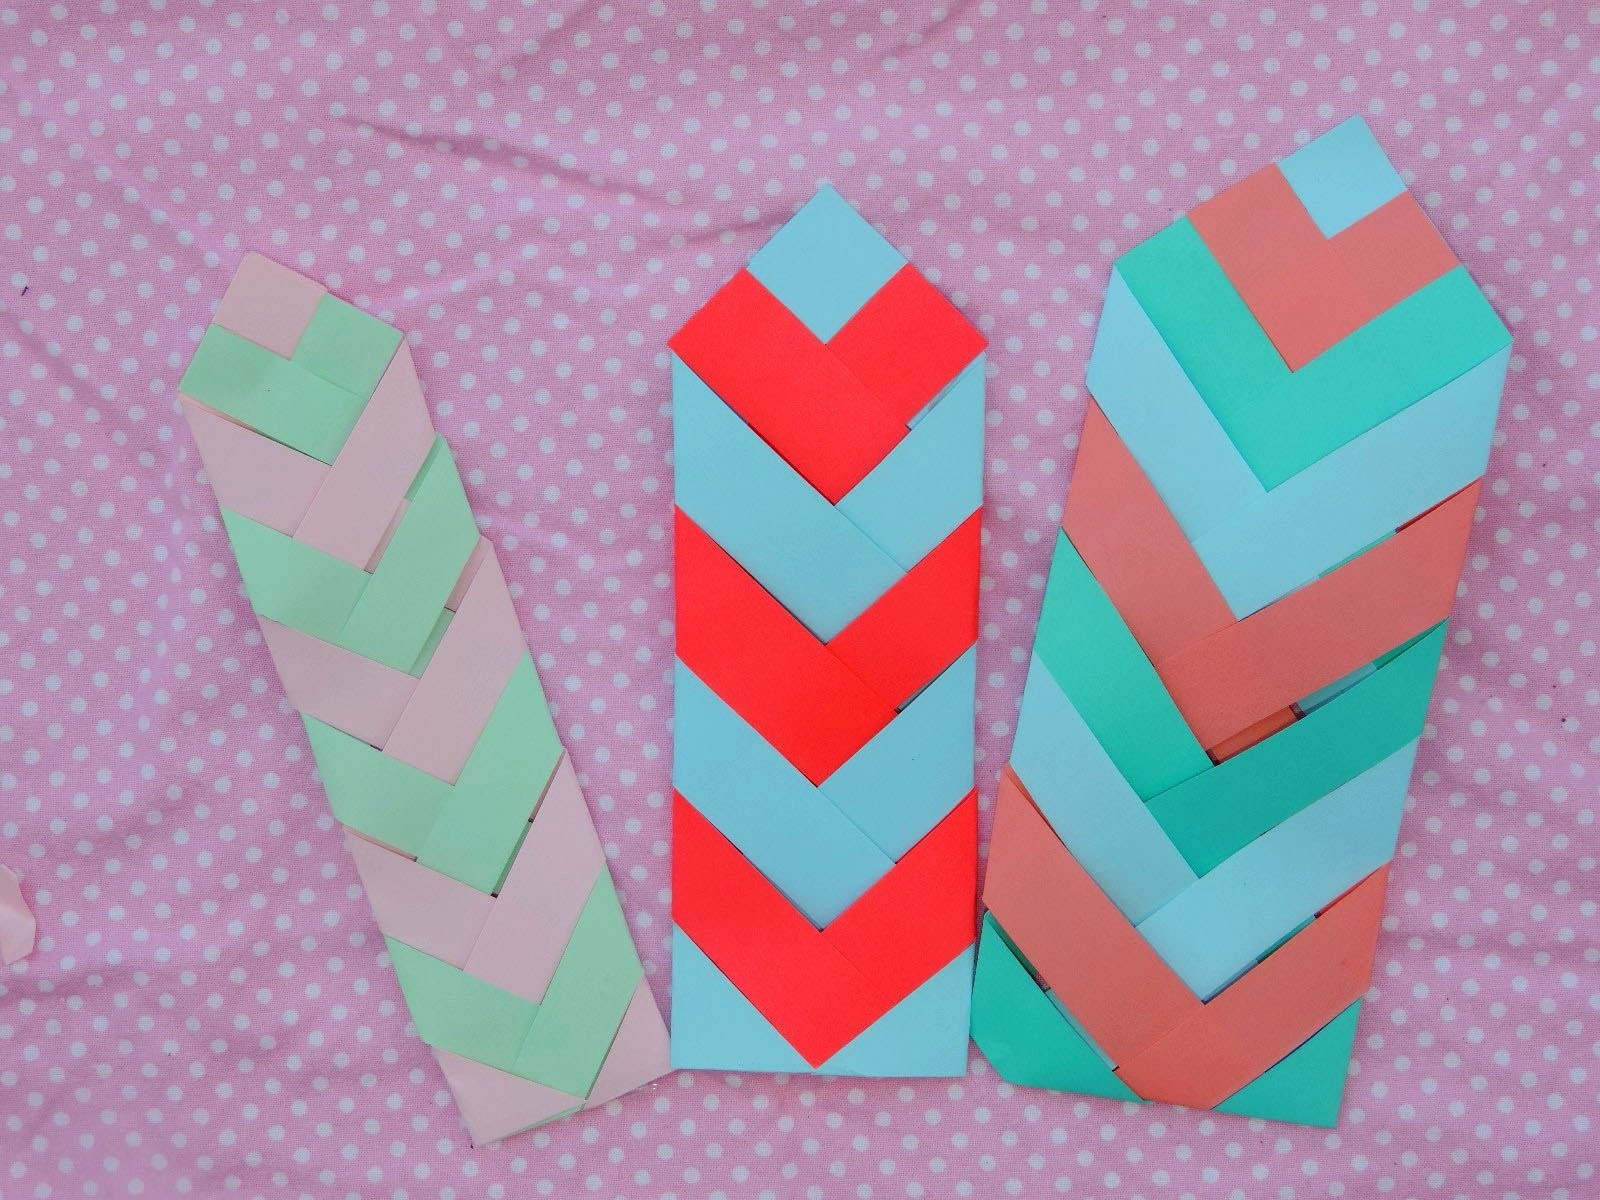 Diy Paper Chevron Bookmark Tutorial - Youtube regarding How To Make Bookmarks Out Of Paper 27912